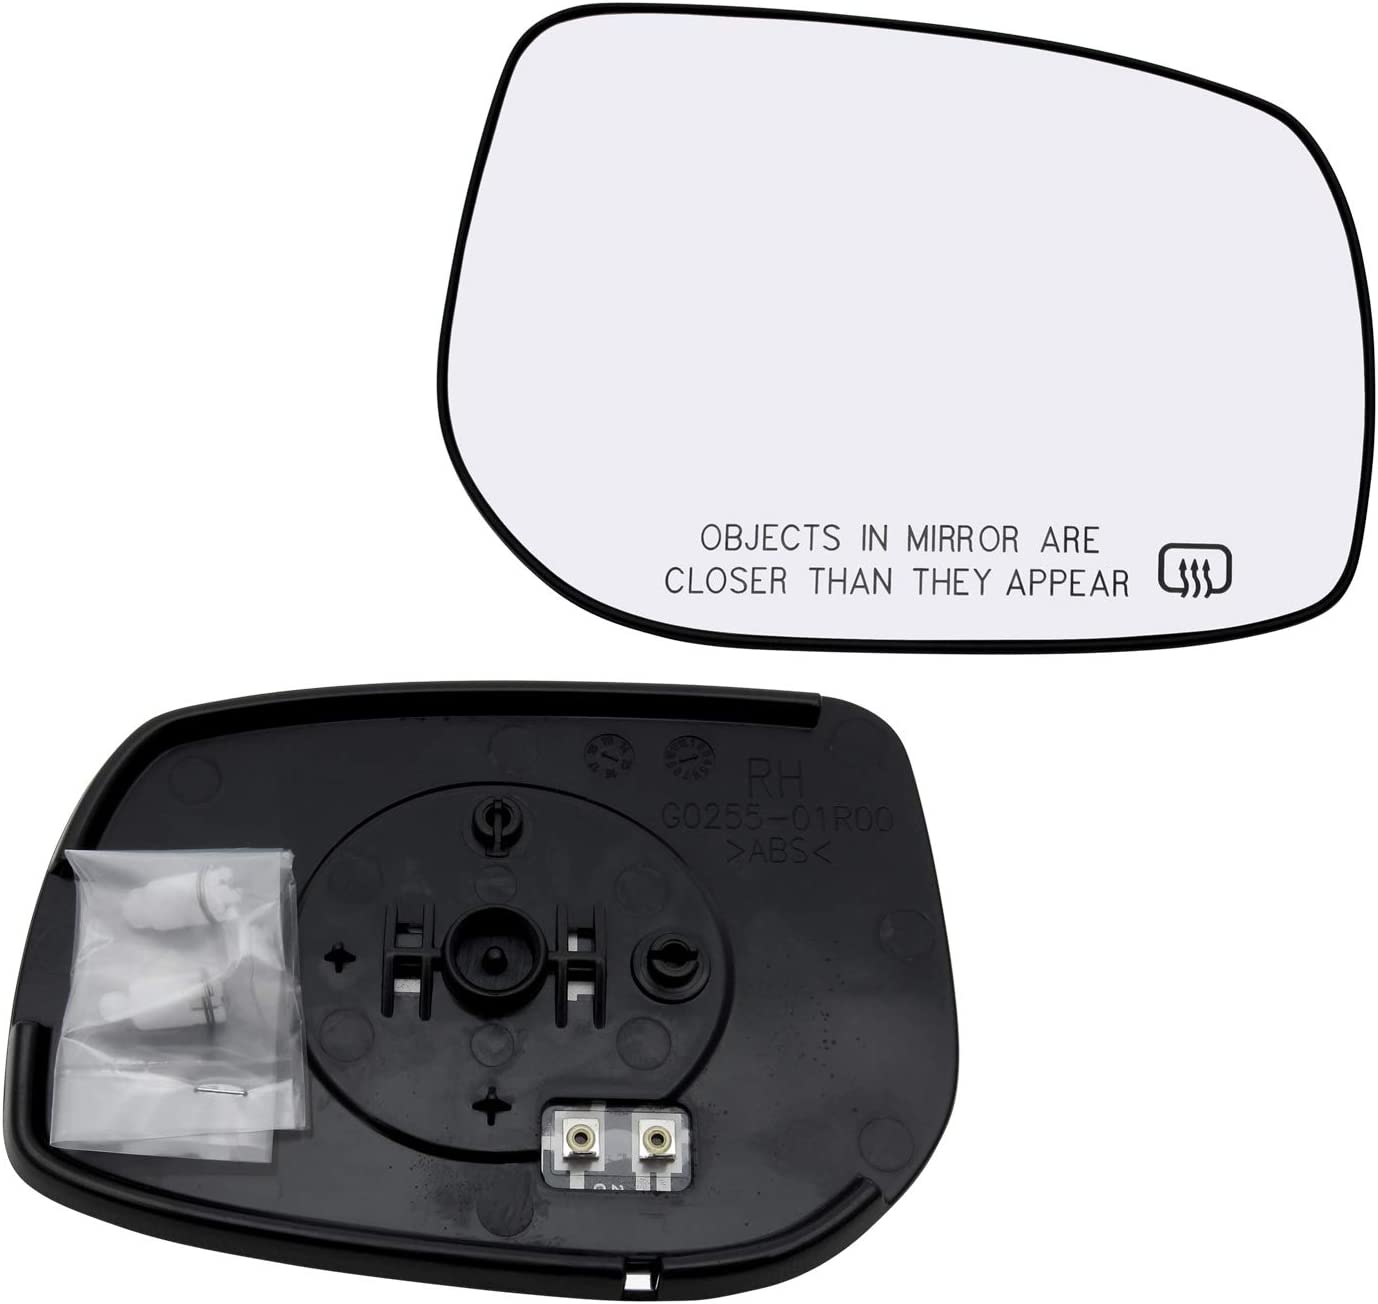 New Replacement Passenger Side Mirror Glass W Backing Compatible With 2009-2013 Toyota Corolla Matrix Sold By Rugged TUFF